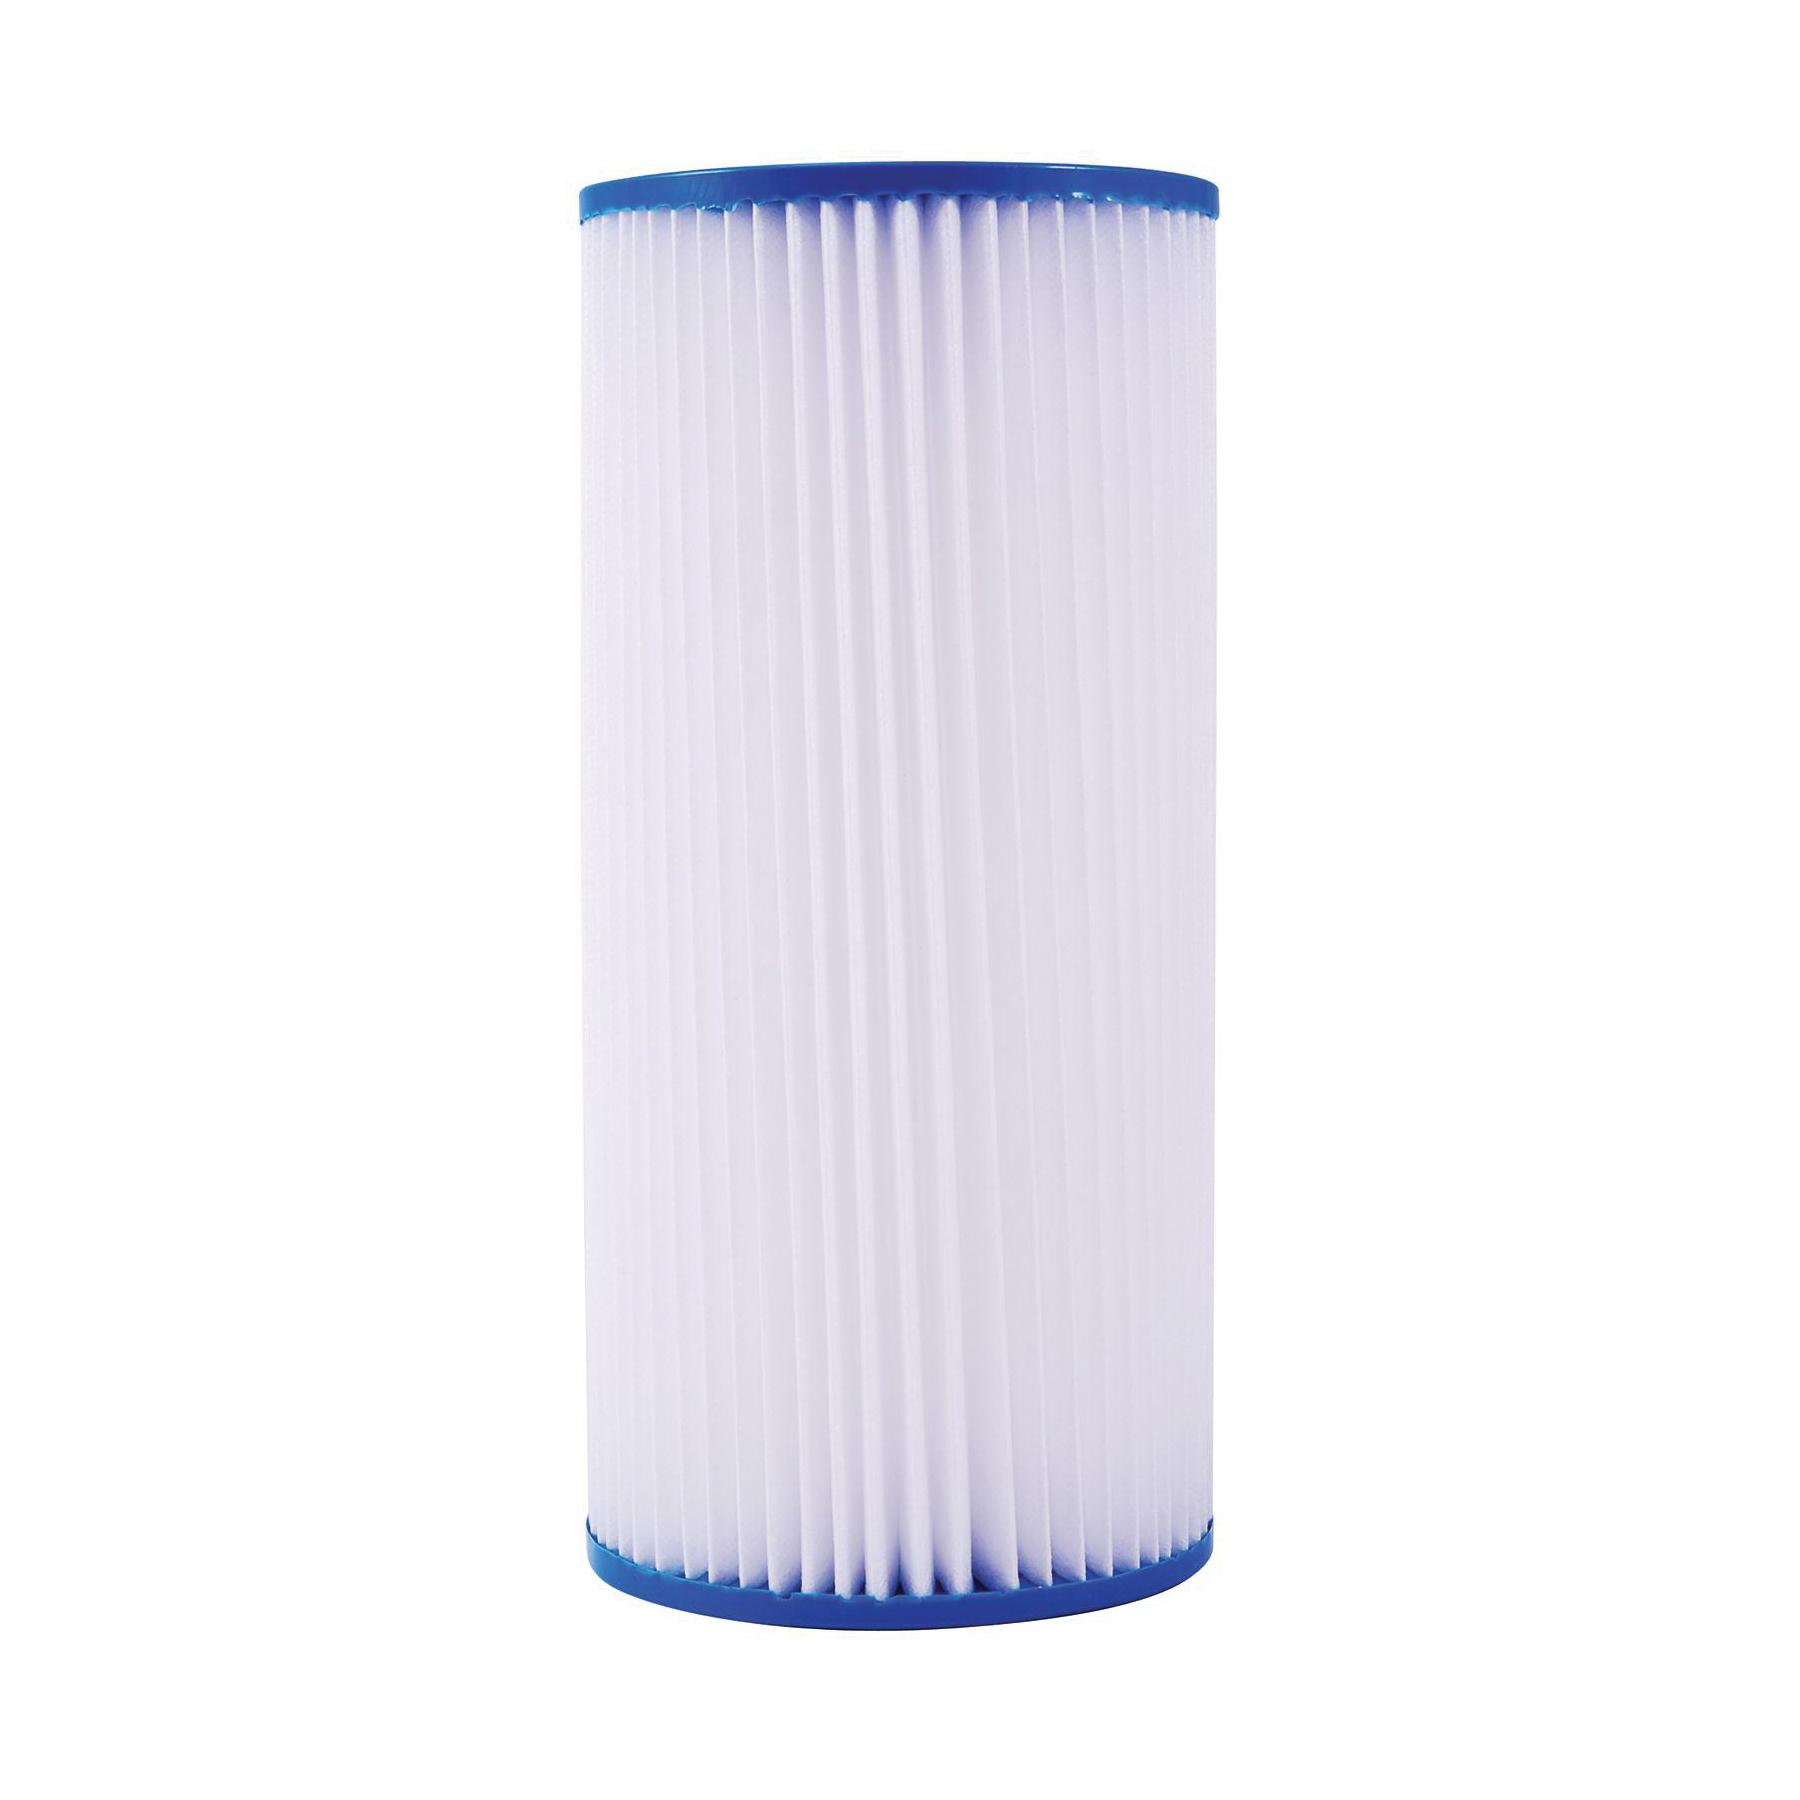 WATTS® 7100417 PWPL20FF Full Flow Pleated Filter Cartridge, 20 in L, Polypropylene